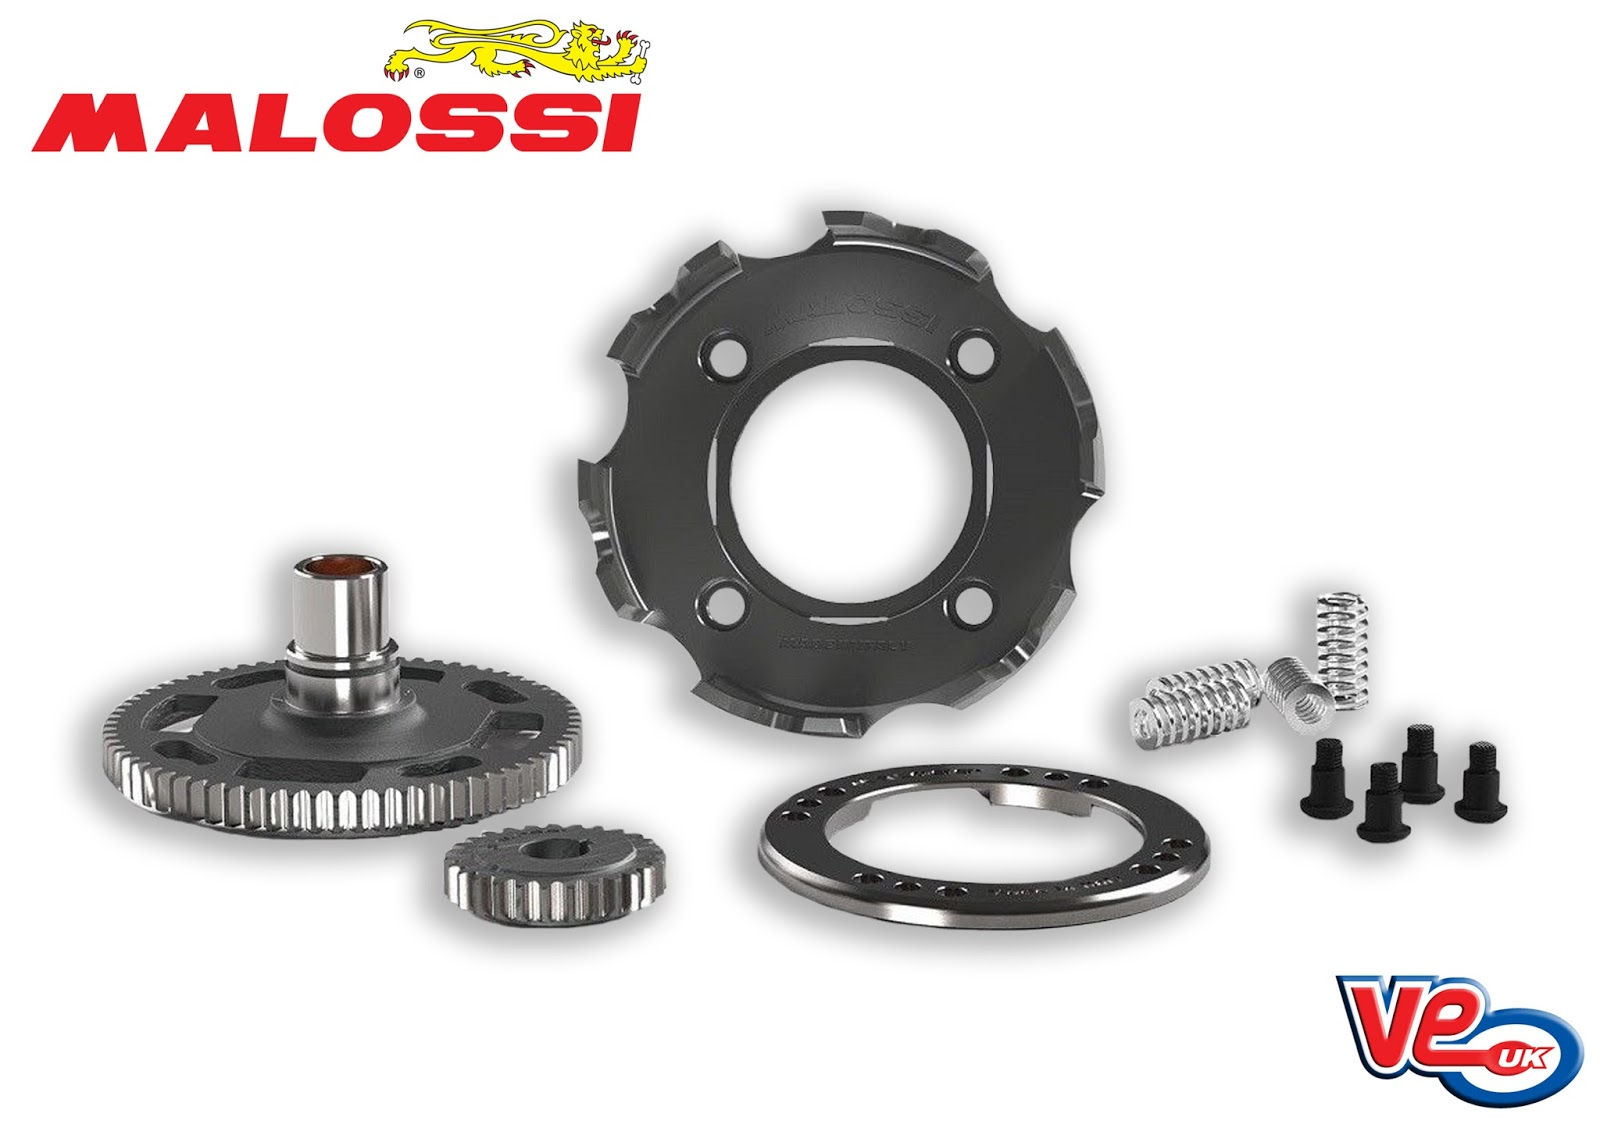 Malossi Vespa Small Frame Primary Drive Kit